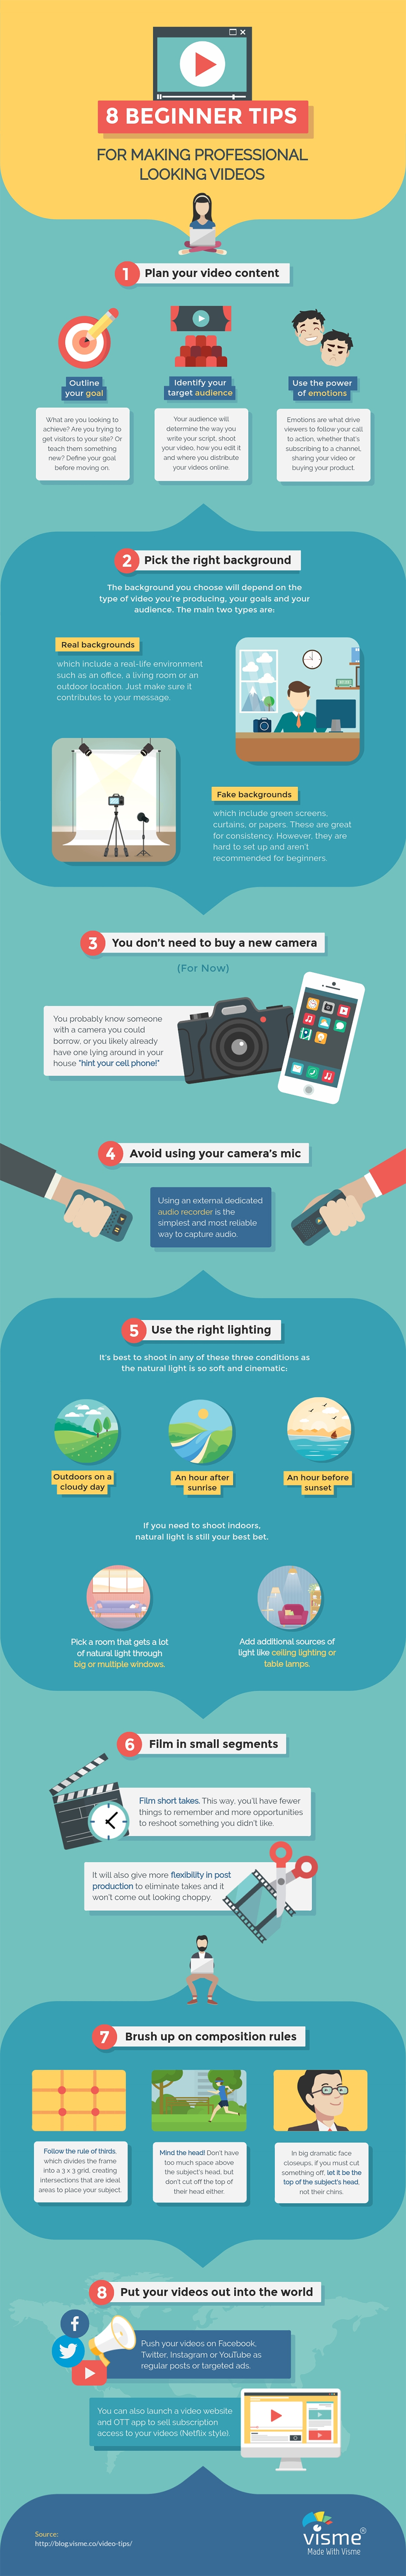 Key tips for creating effective video content [infographic]